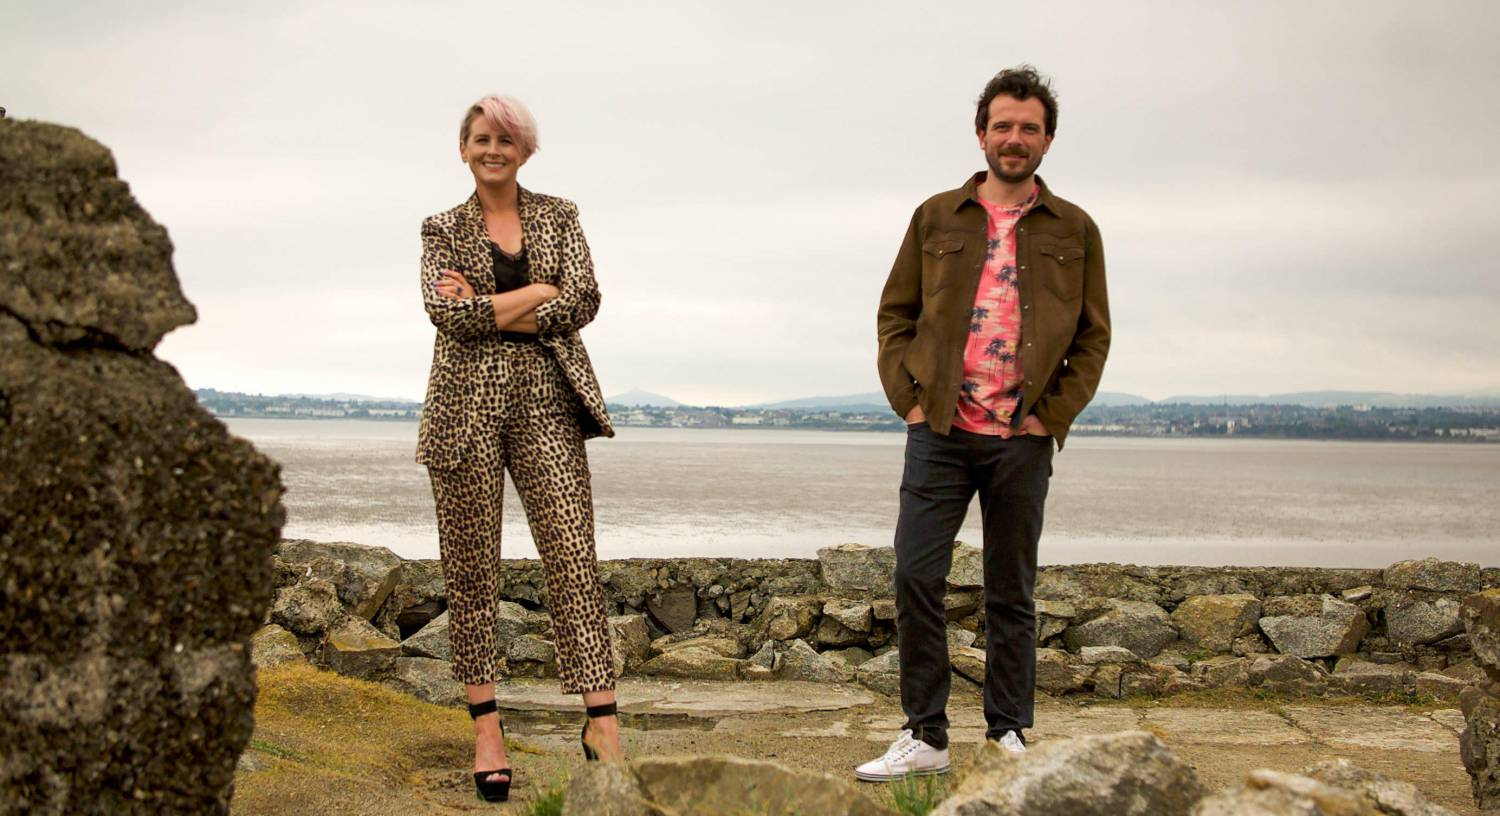 Get ready to see a new side to Sinead Kennedy on new show, Summer at Seven